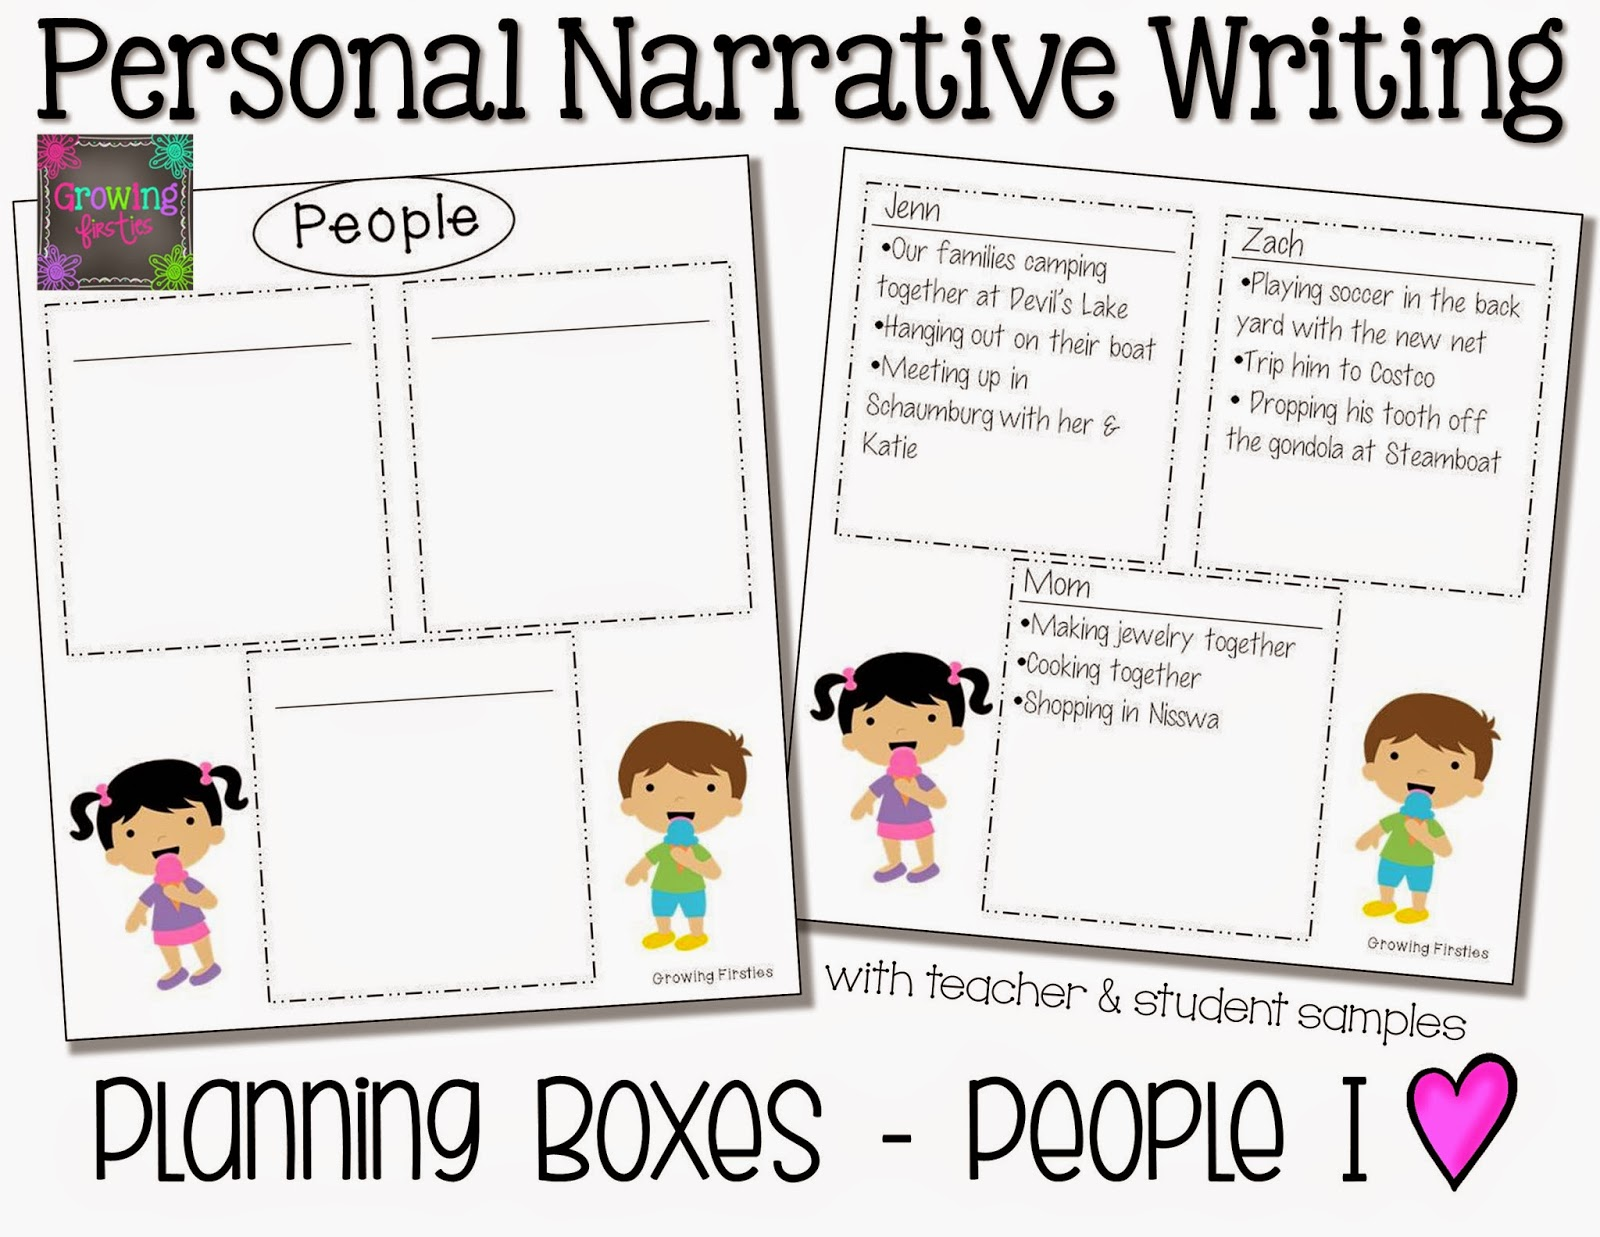 personal narrative essay stories Results 1 - 20 of 21629  personal narrative essay sample i always love the idea of providing examples  for  good endings for storiespdf - google drive.